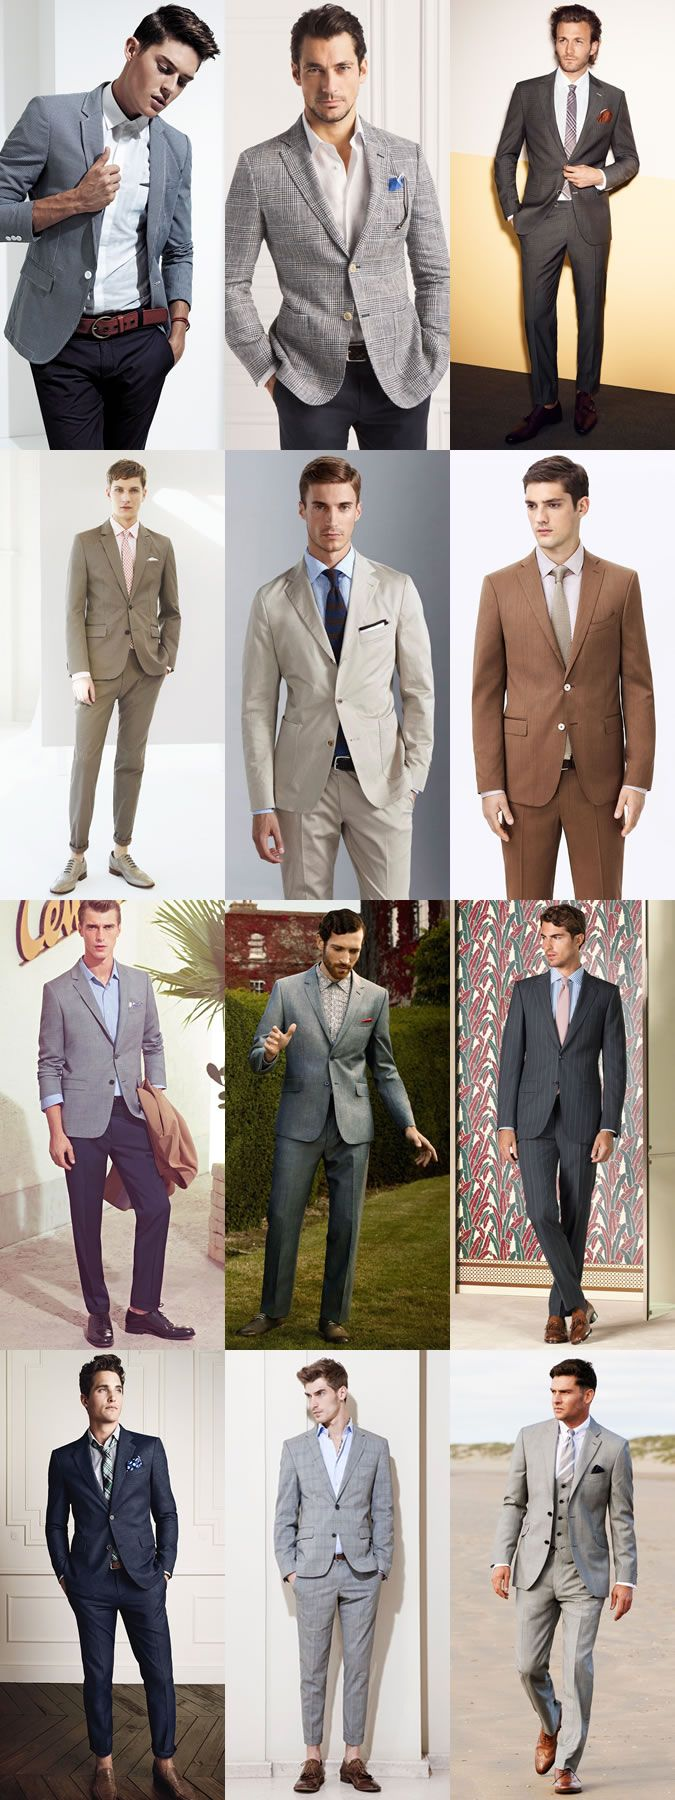 Men's Summer Wedding Guest Outfits Grey desert shoes